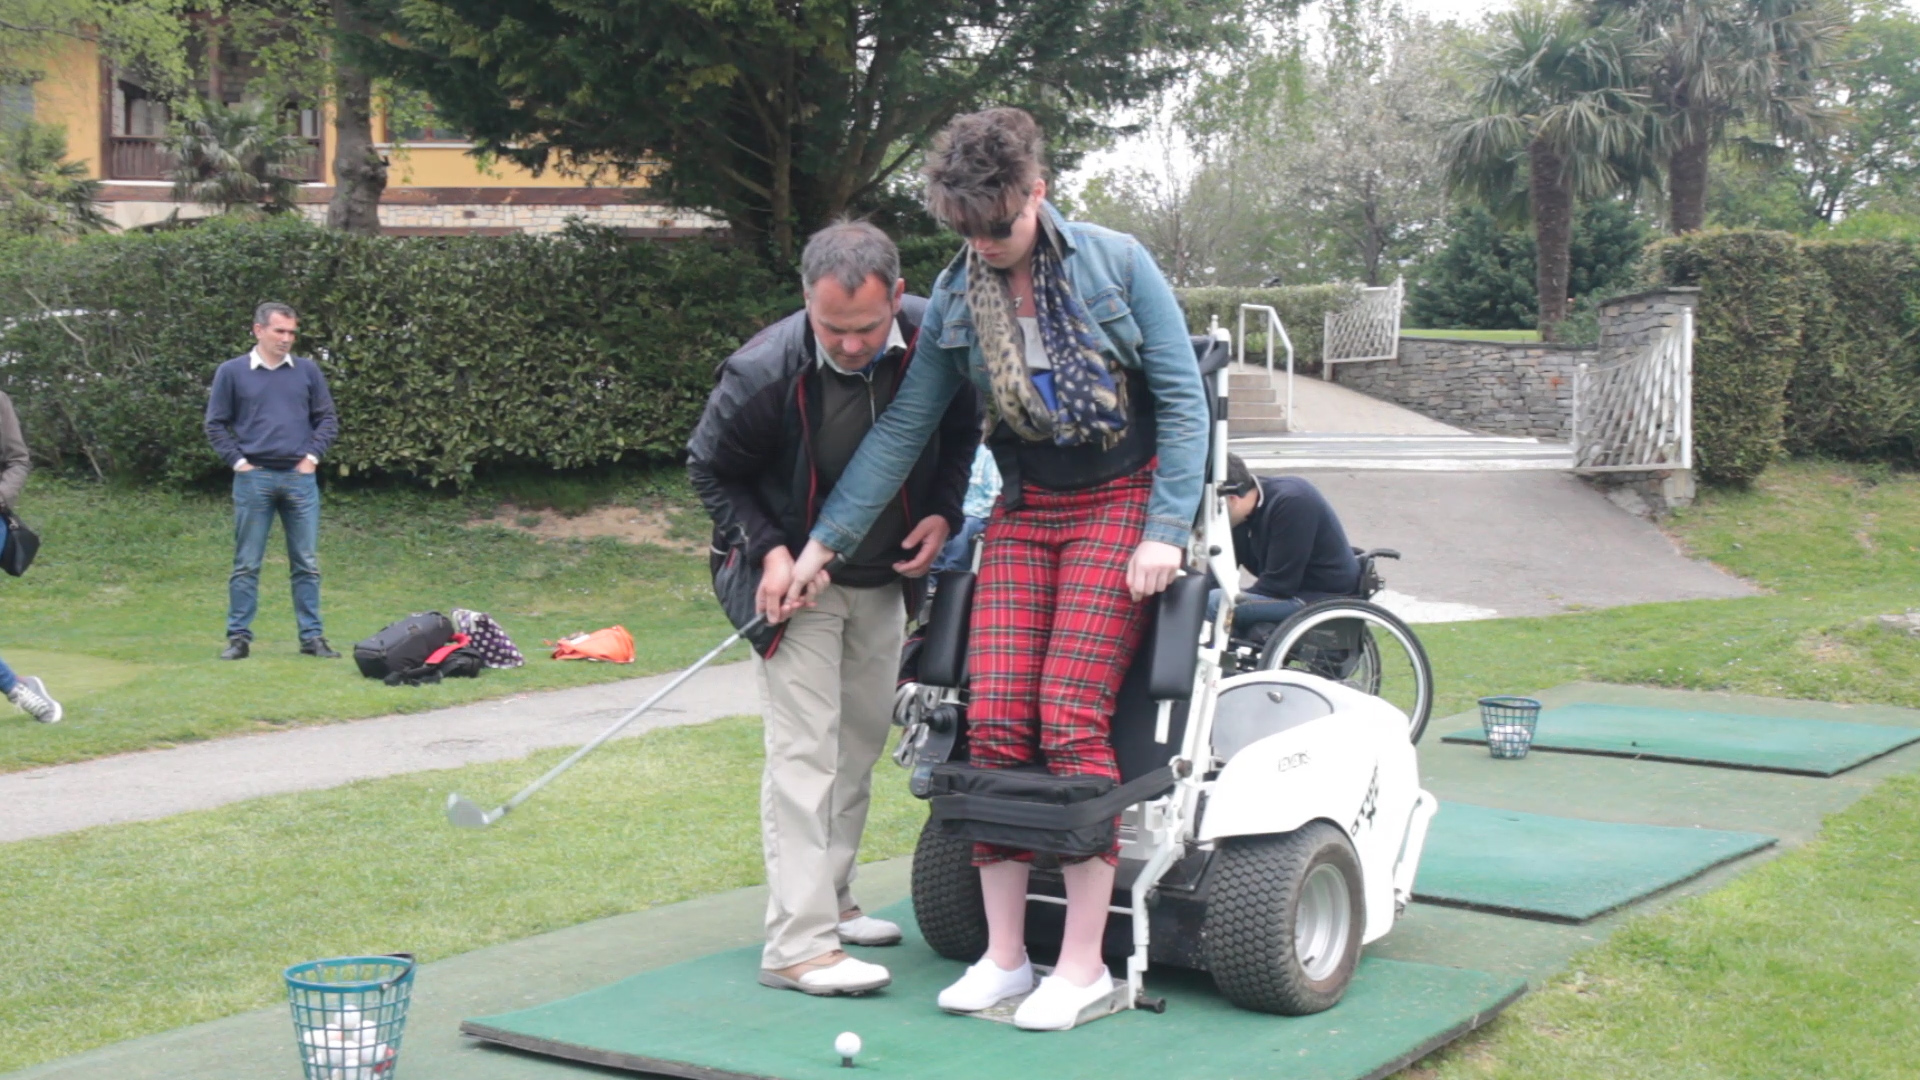 Here's Kathanna from Disabled Access Holidays demonstrating her skills!